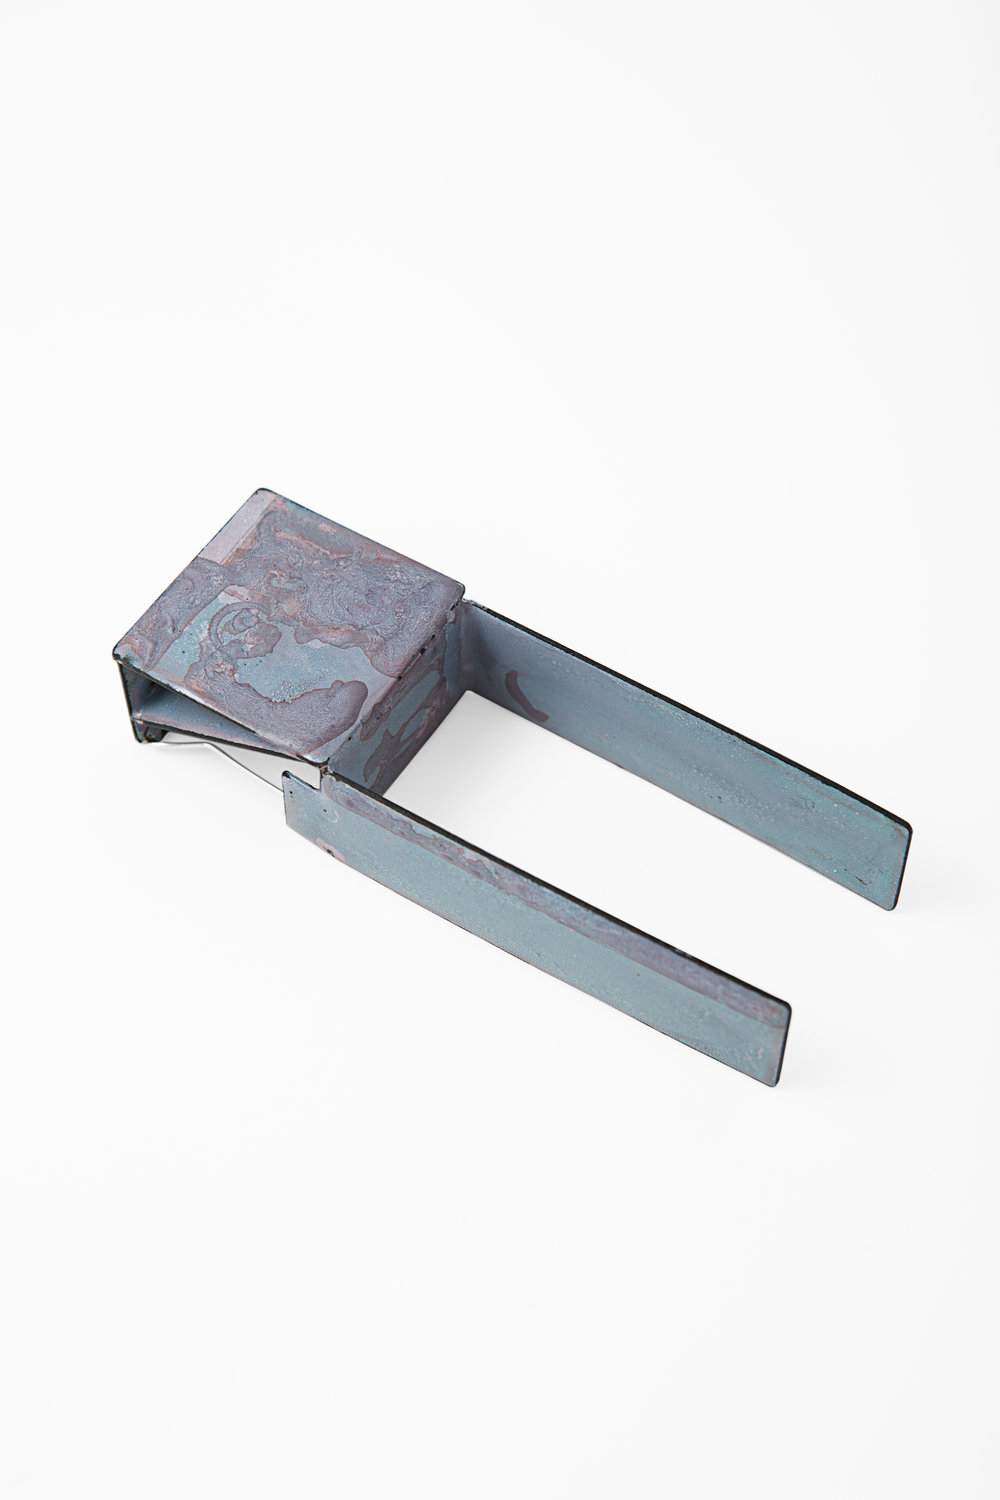 A Square With Legs,  2014.   Enamel, mild steel and stainless steel.   Photo by Ken Arini Photography.